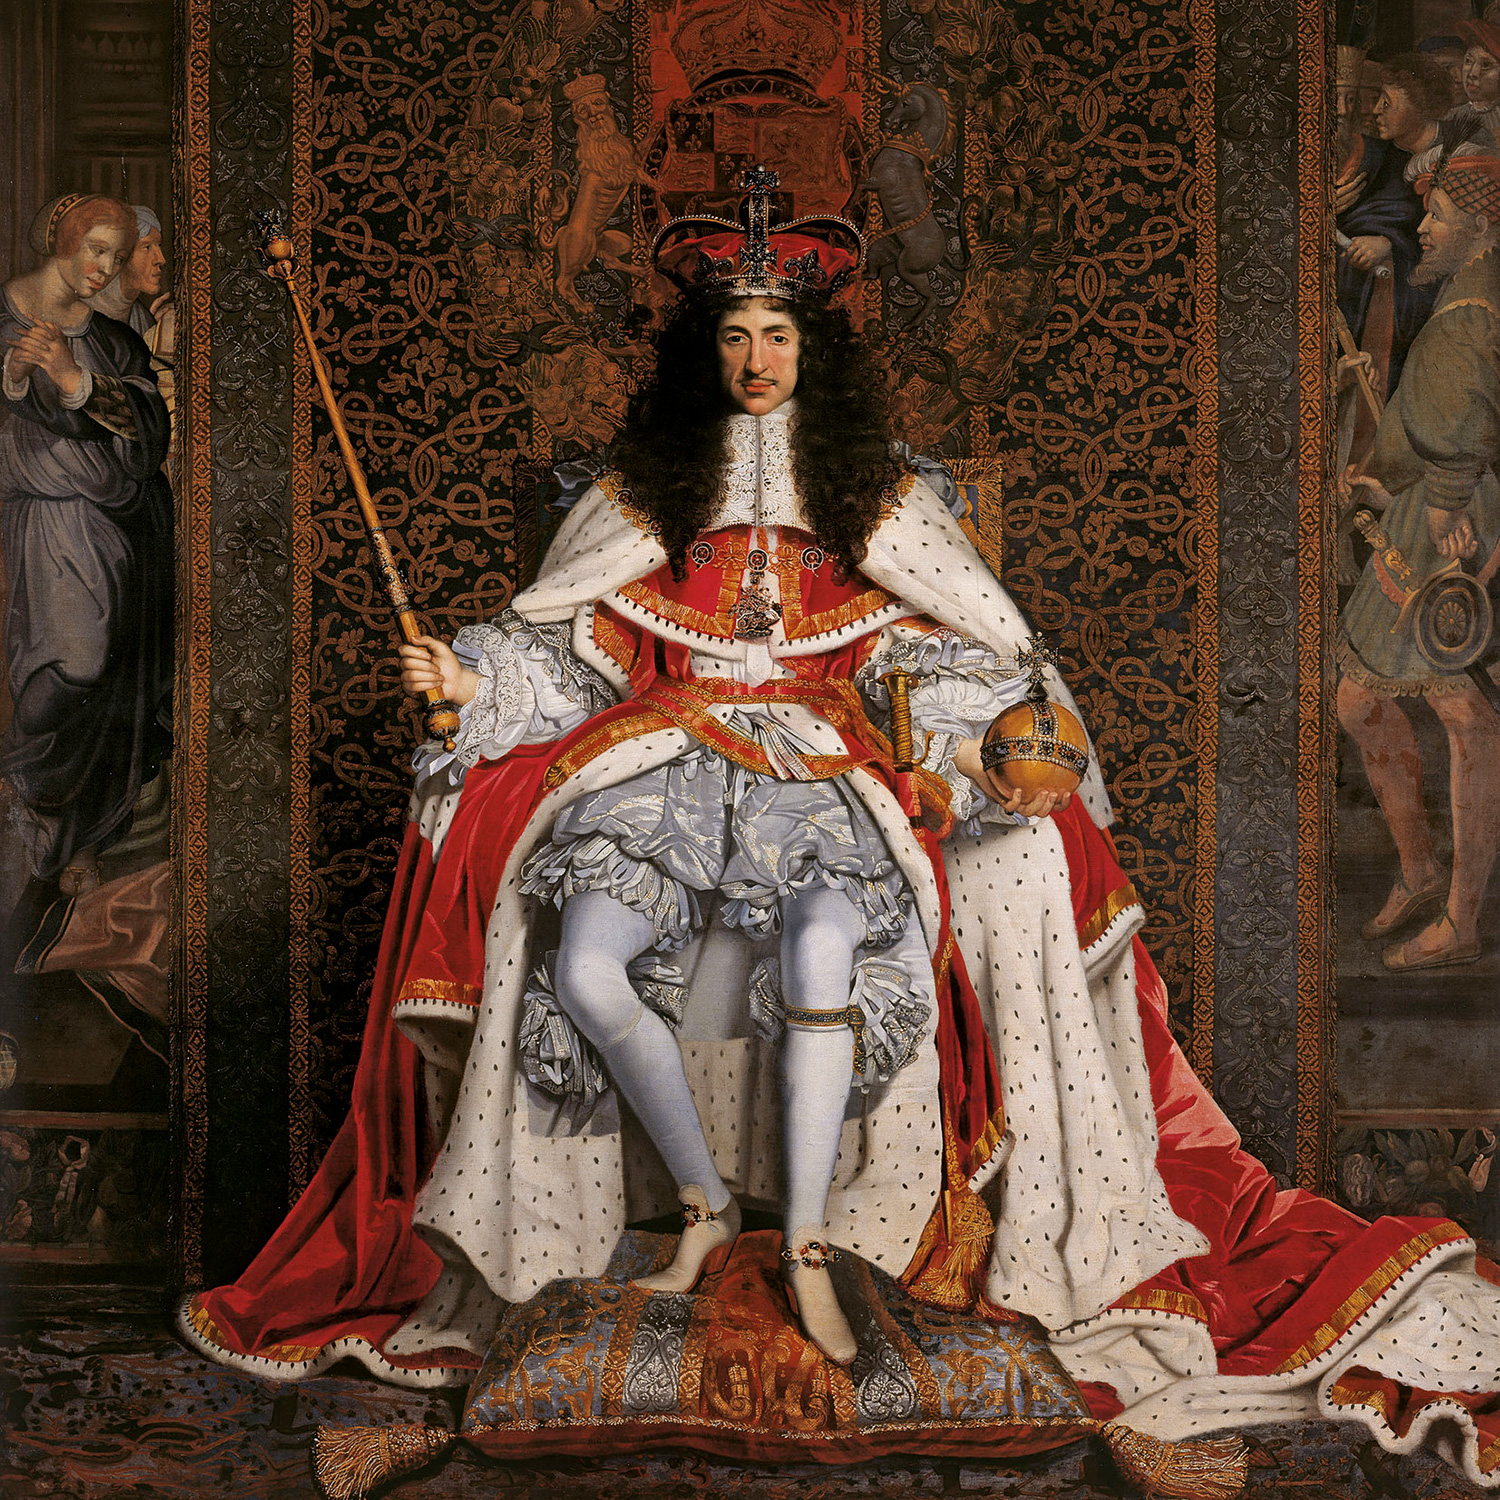 File:Charles II of England in Coronation robes.jpg